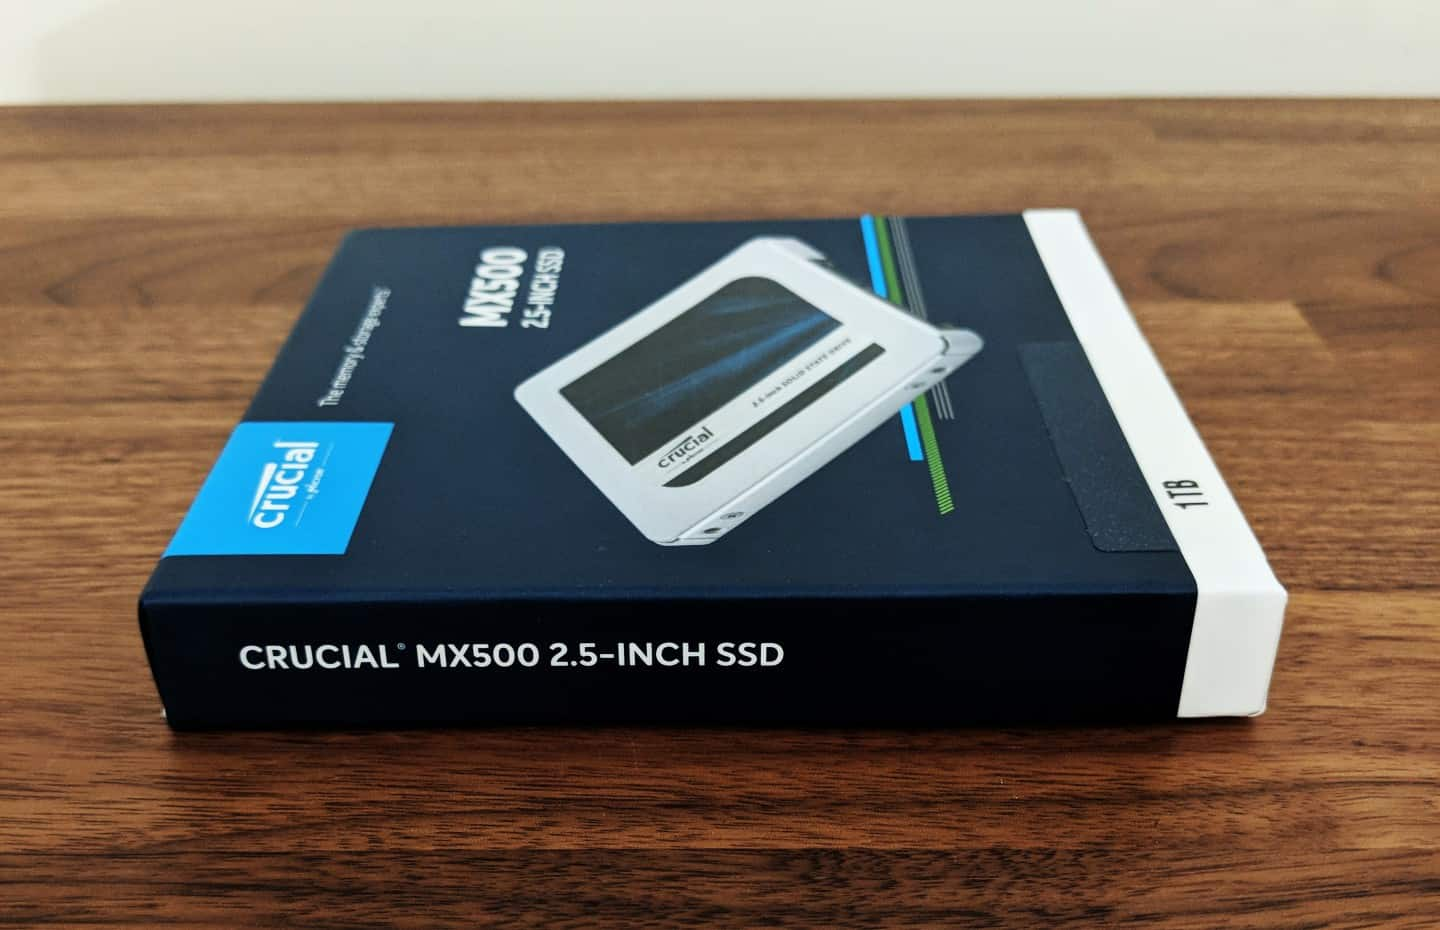 Crucial-MX500-1TB-Photos03 Crucial MX500 1TB SSD Review